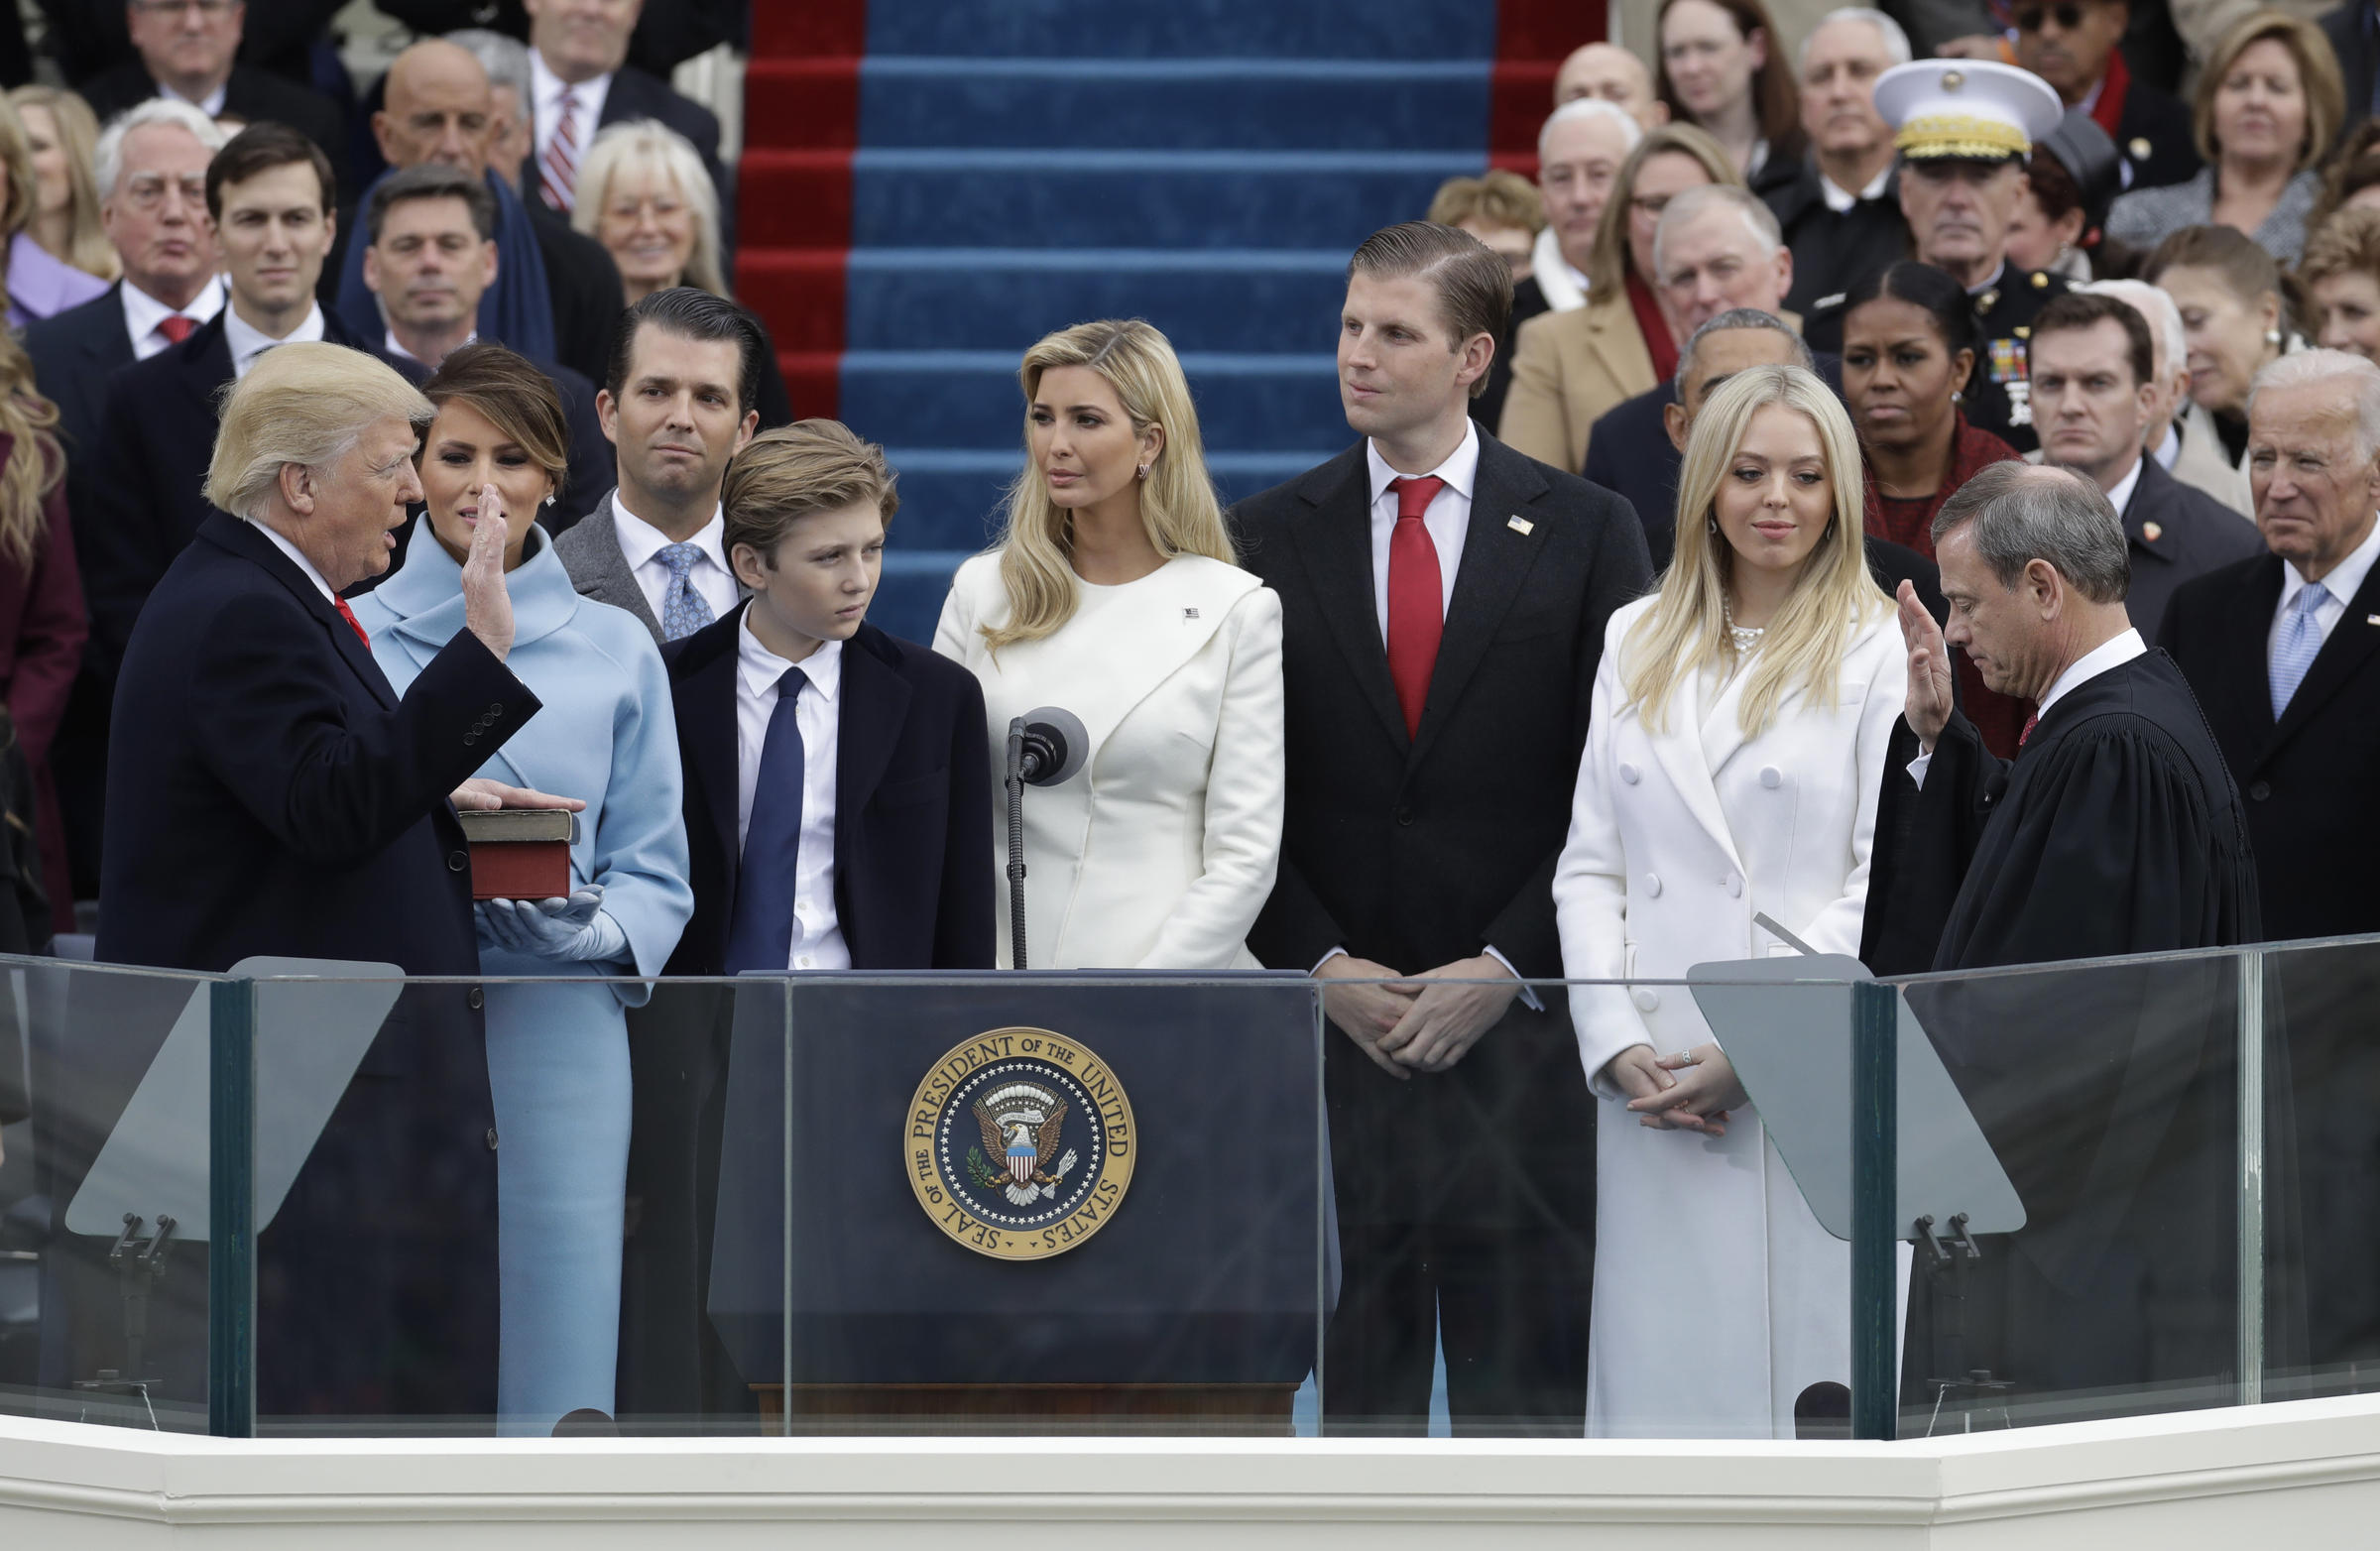 Donald Trump is sworn in as the 45th president of the United States by  Chief Justice. View Slideshow 2 of 8